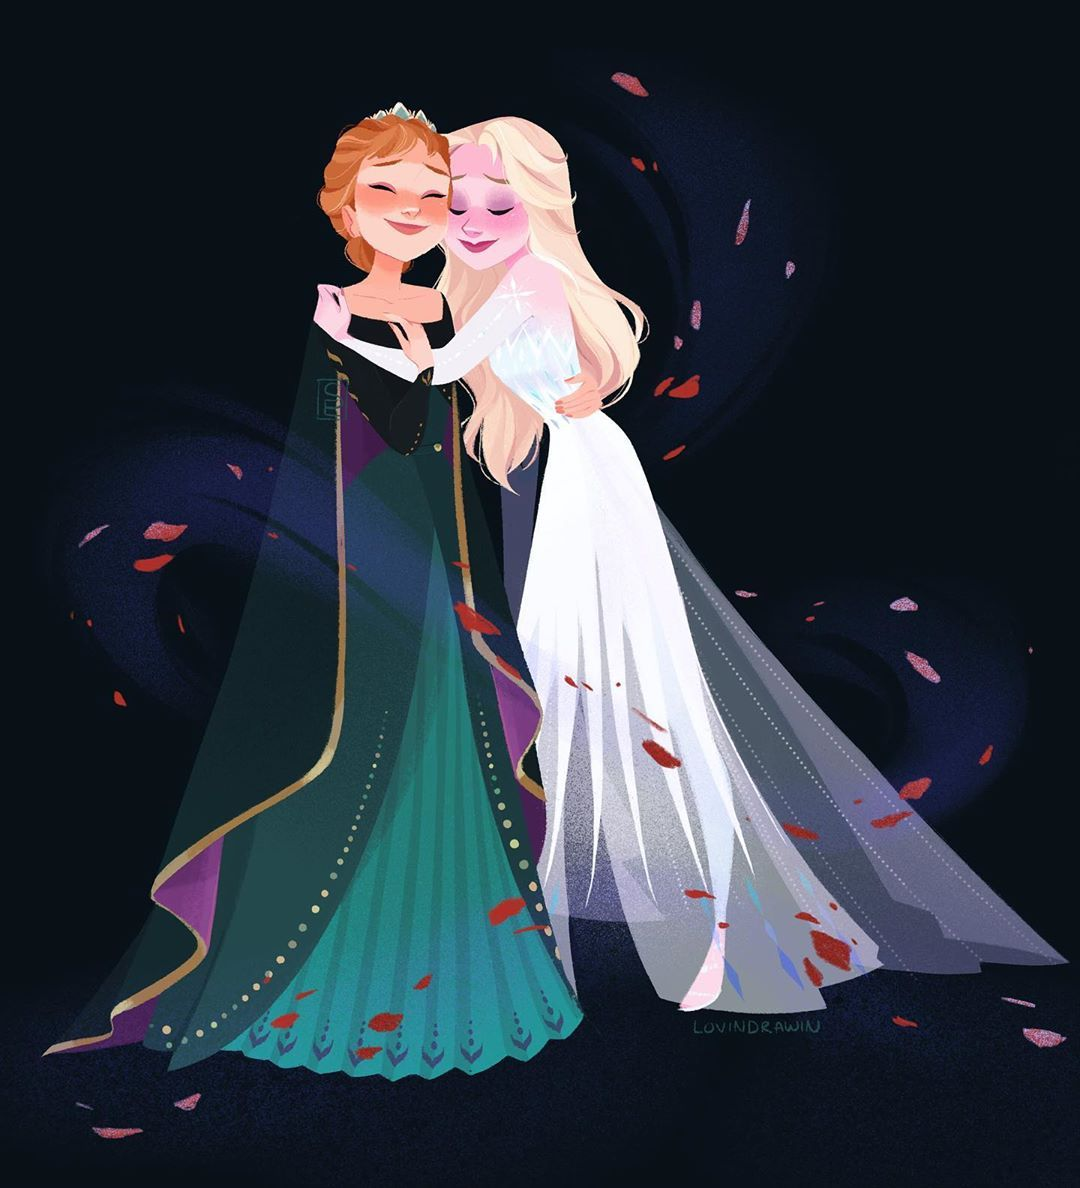 17 4k Likes 91 Comments Emma Lovindrawin On Instagram Some Things Never Change Frozenfanart Frozen Disney Movie Disney Cartoons Disney Frozen